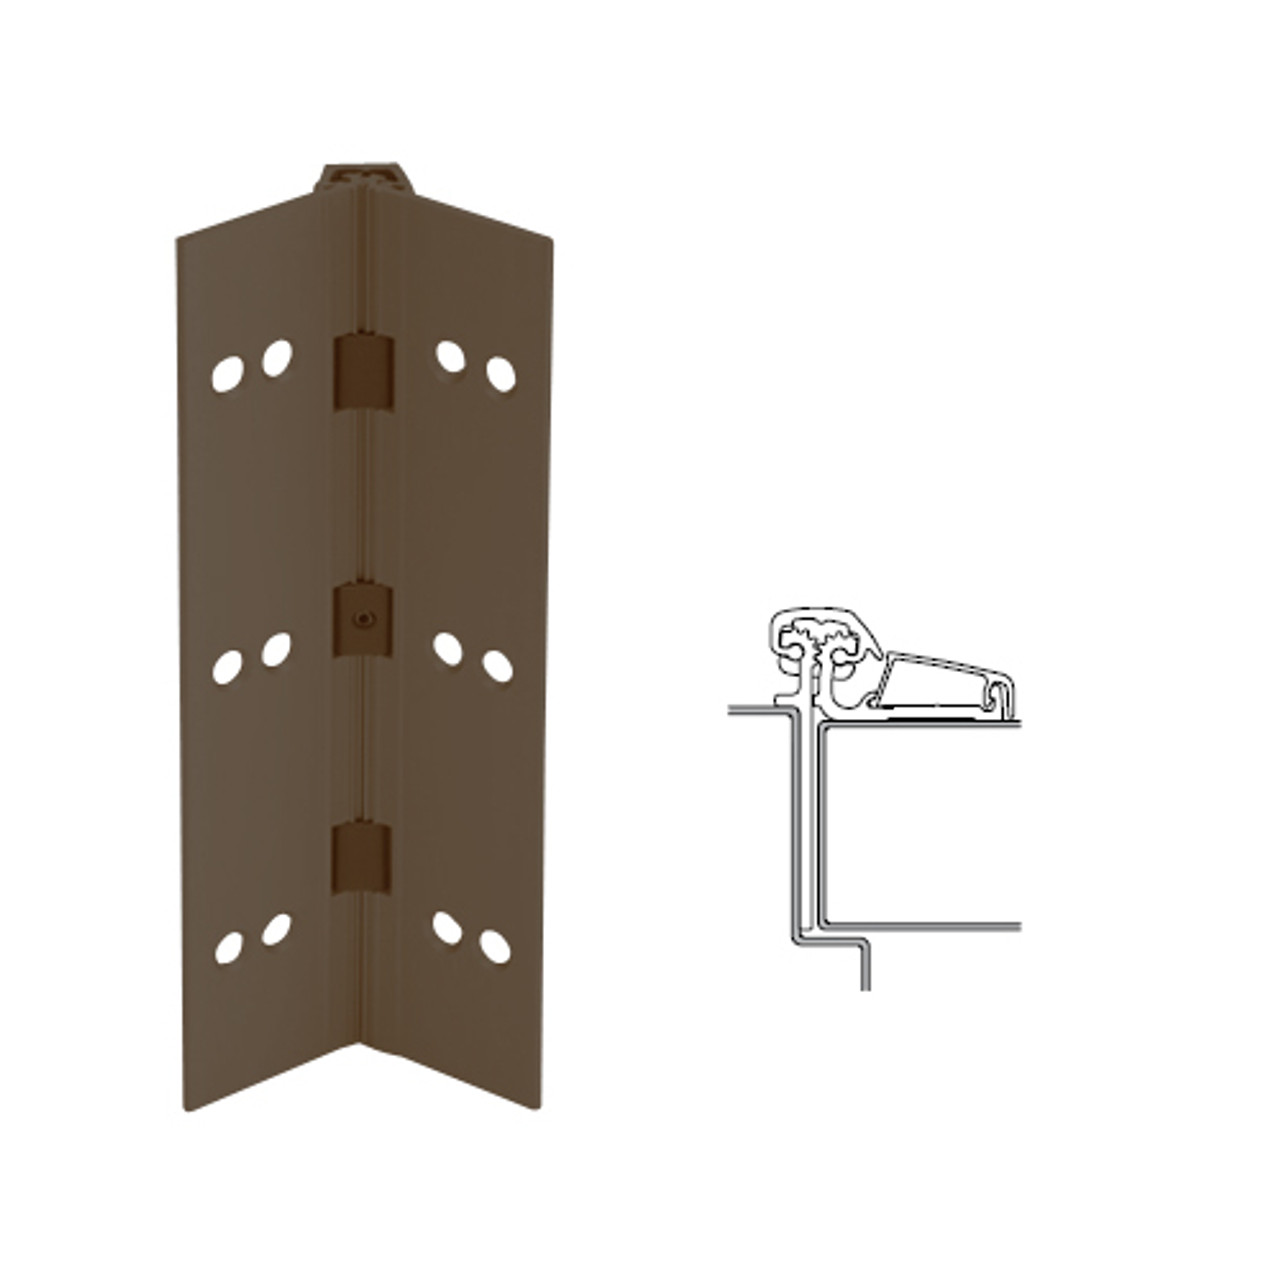 054XY-313AN-120-SECWDWD IVES Adjustable Half Surface Continuous Geared Hinges with Security Screws - Hex Pin Drive in Dark Bronze Anodized